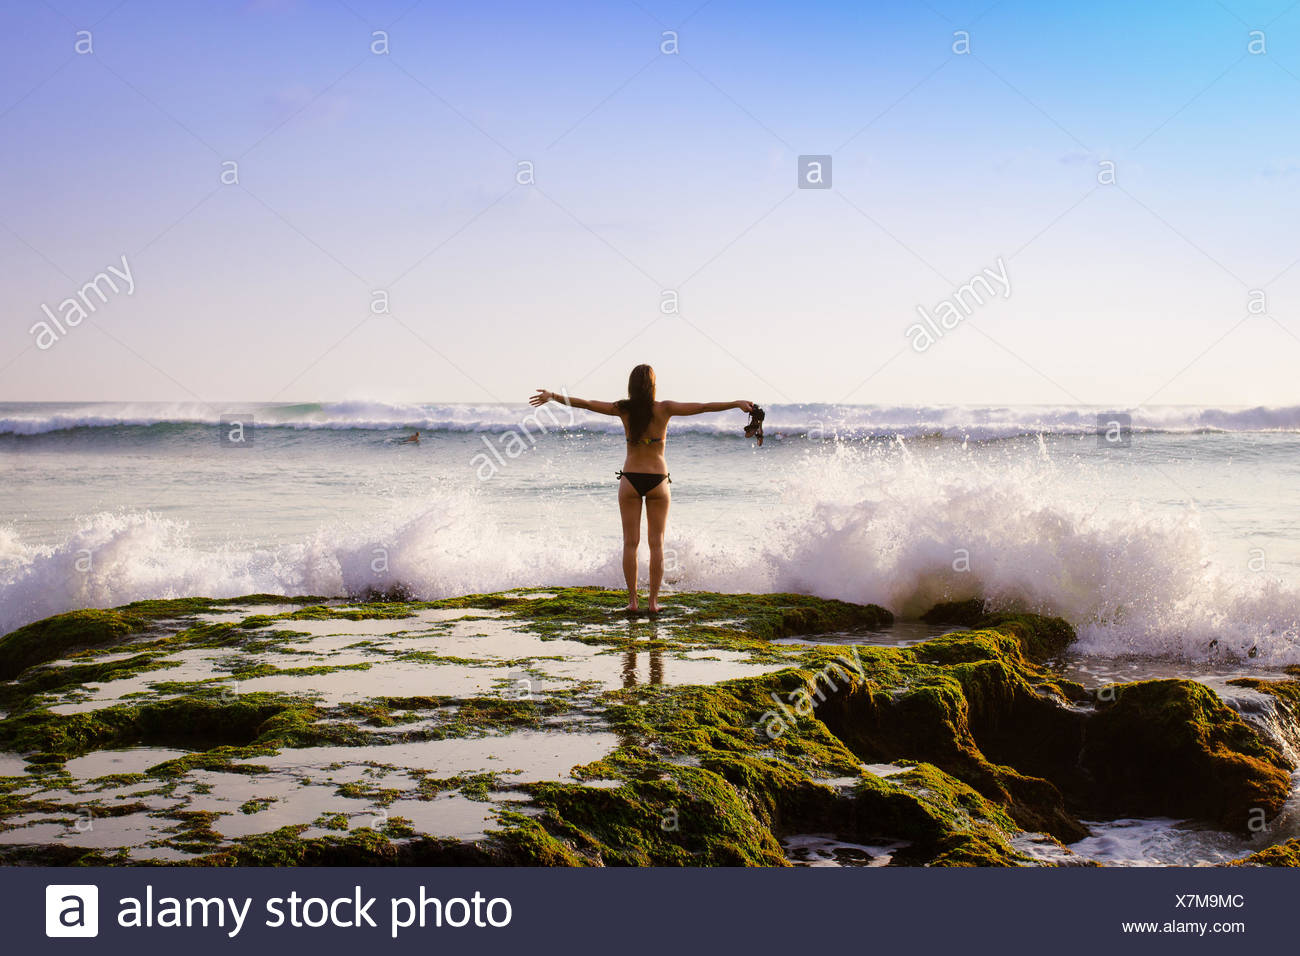 Beauty Of Bali Stock Photos & Beauty Of Bali Stock Images ...